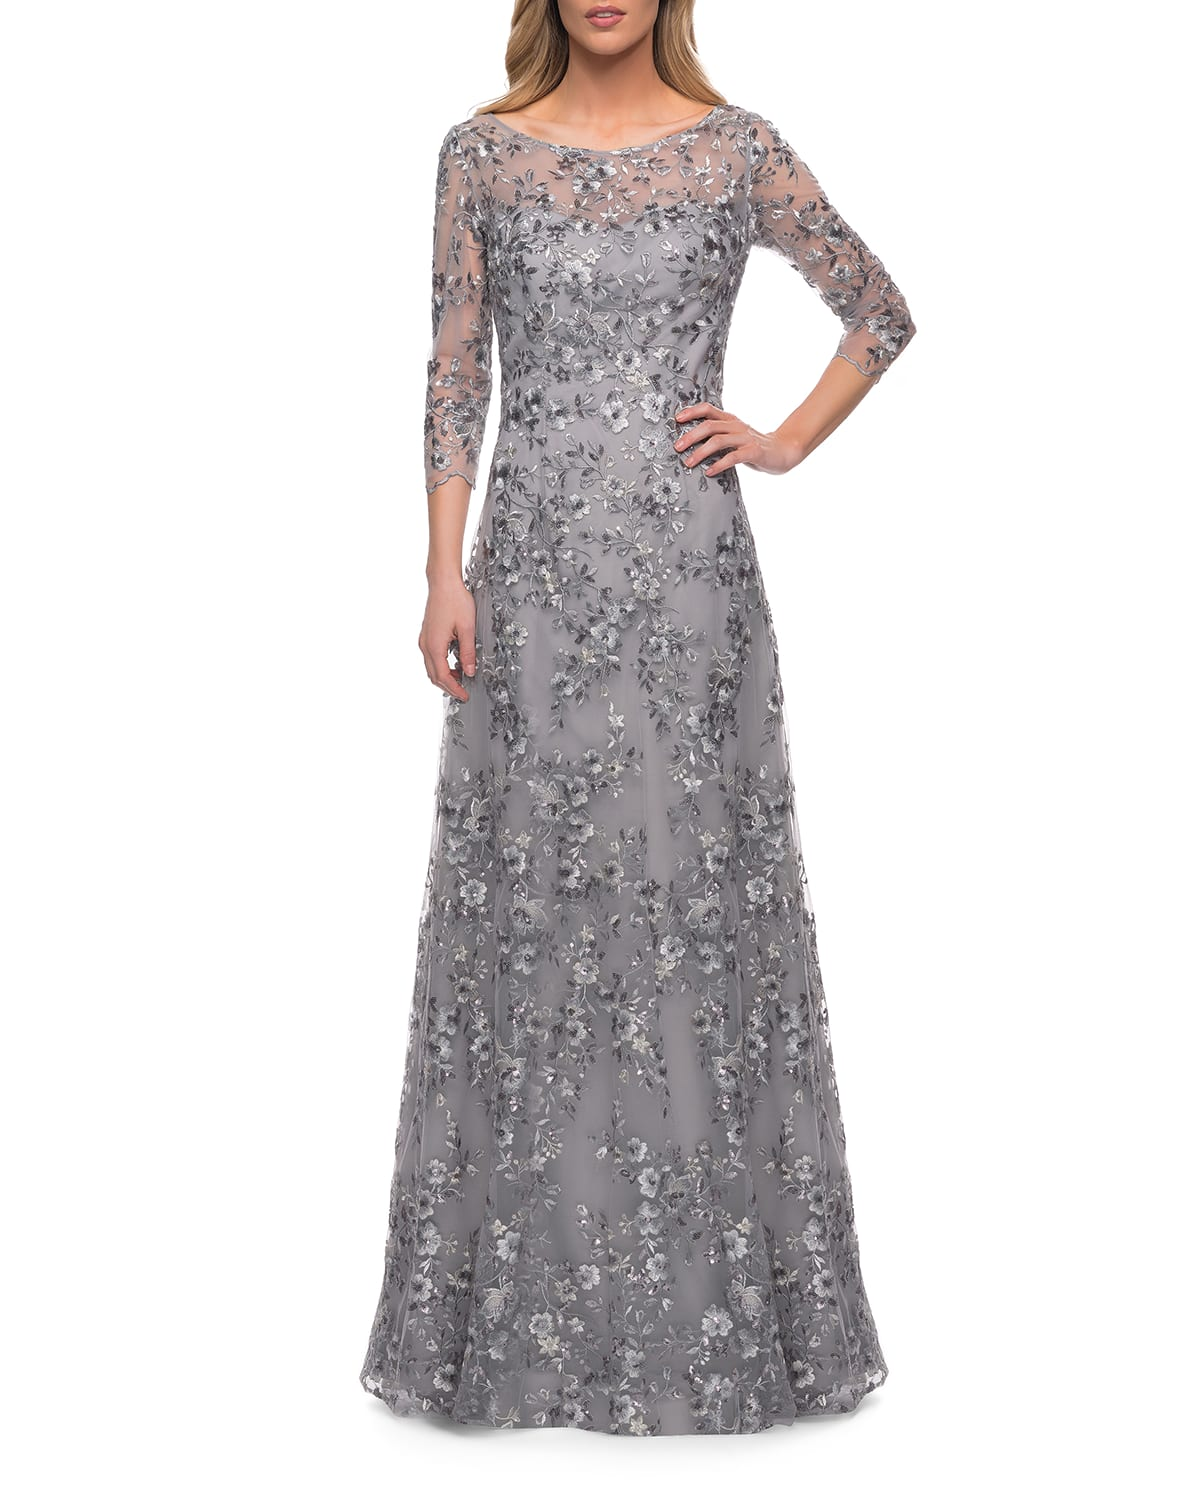 Sequined Metallic Illusion 3/4-Sleeve Gown